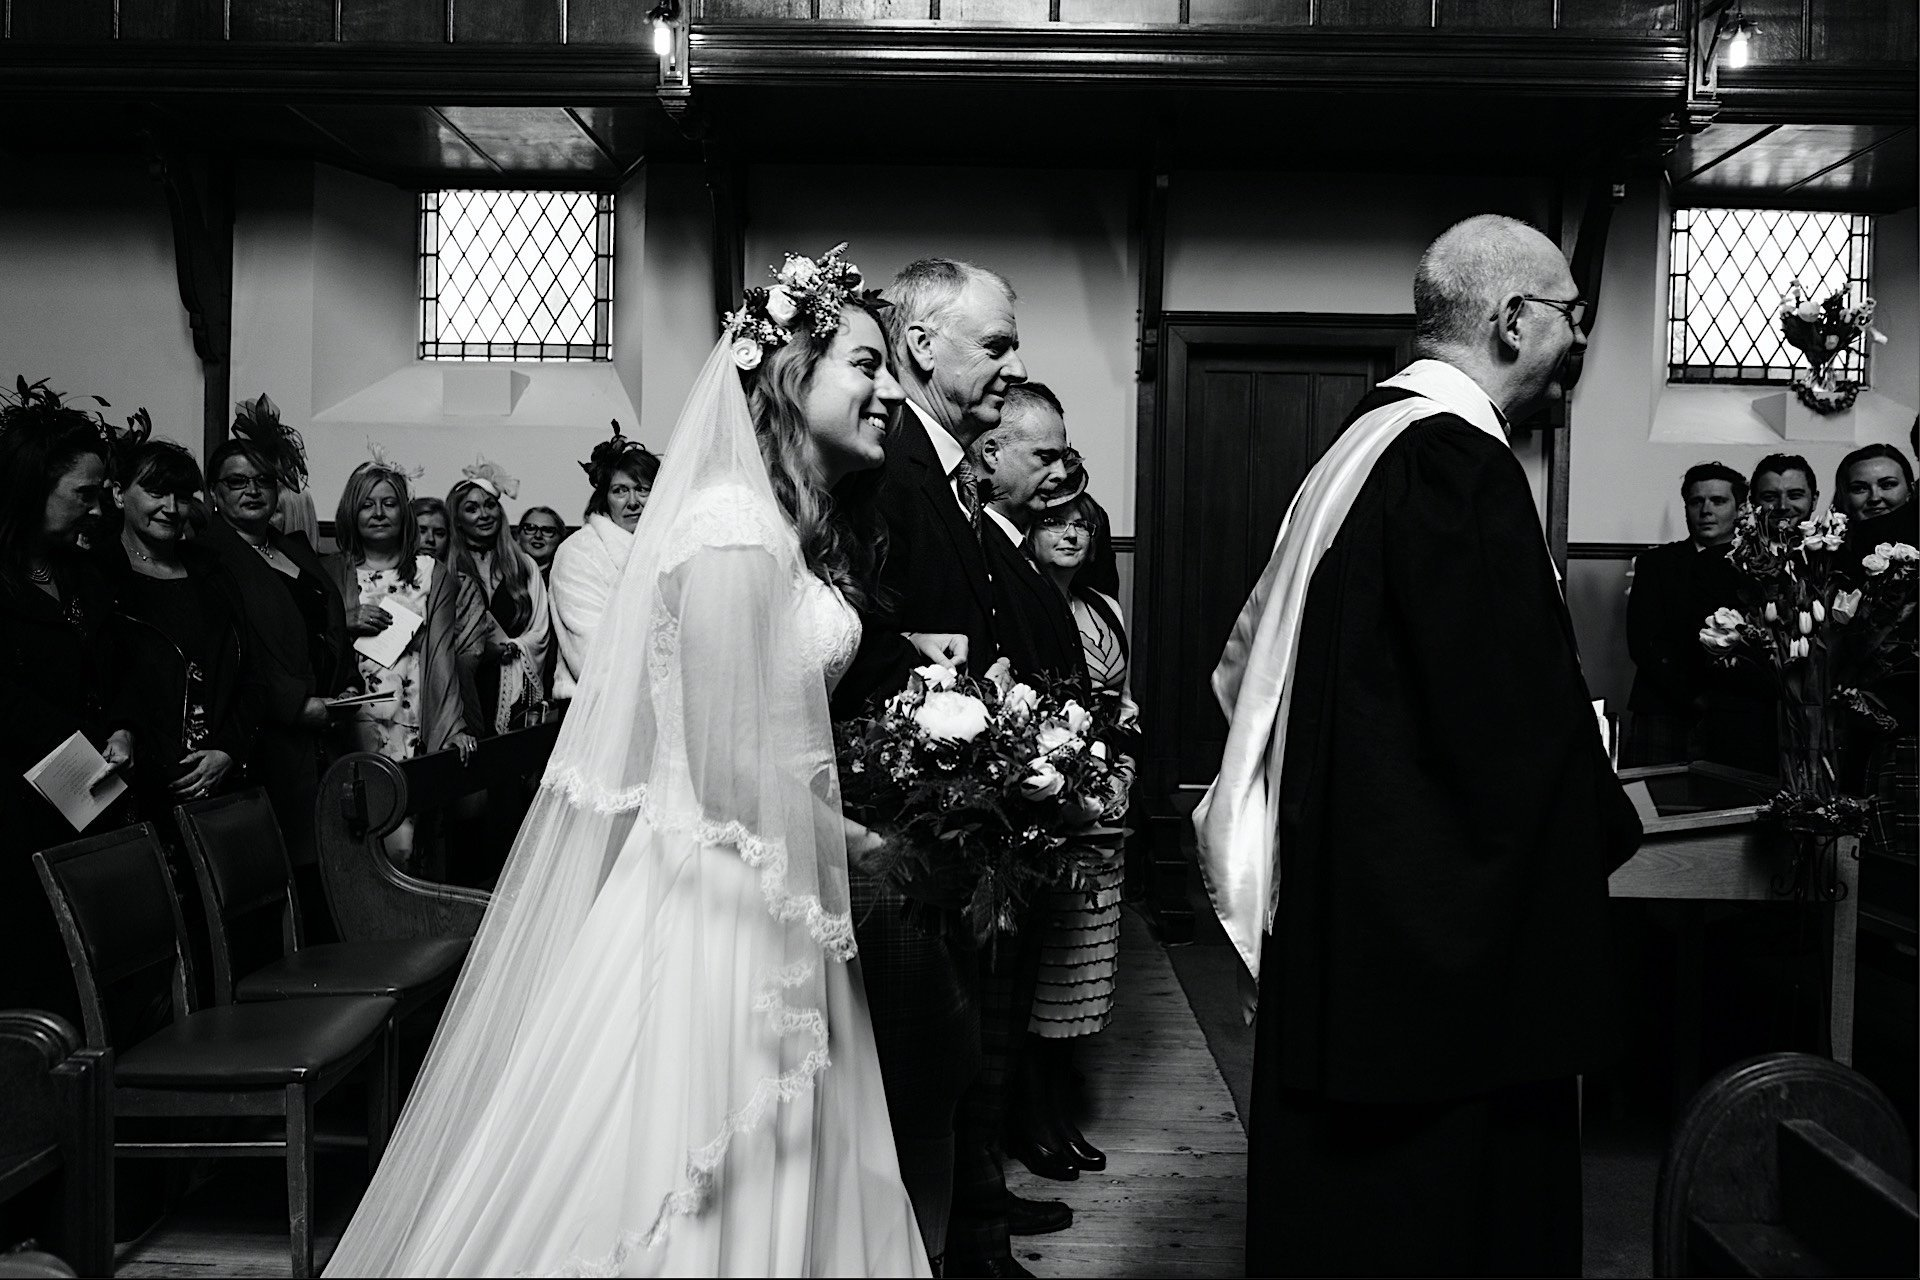 bride Walking with father up the aisle of the church